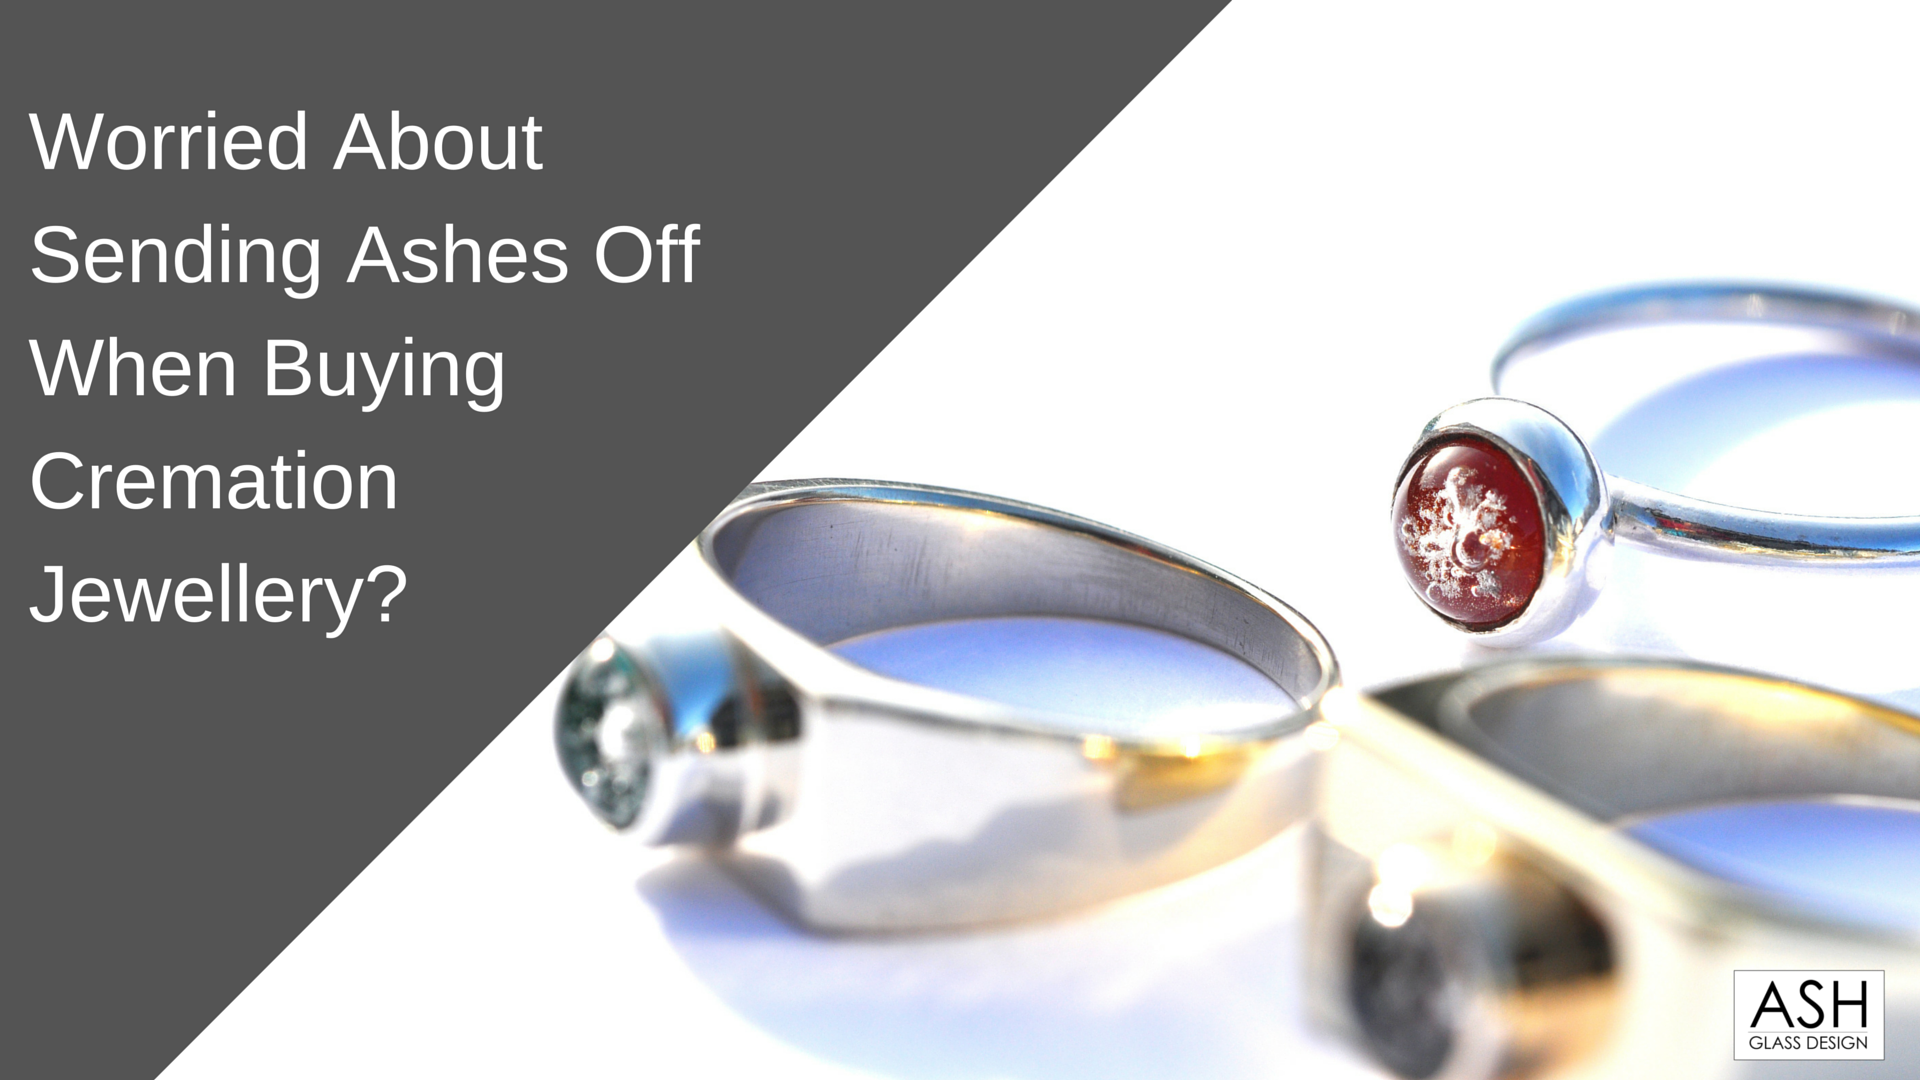 Worried about sending ashes off when buying cremation jewellery worried about sending ashes off when buying cremation jewellery solutioingenieria Image collections